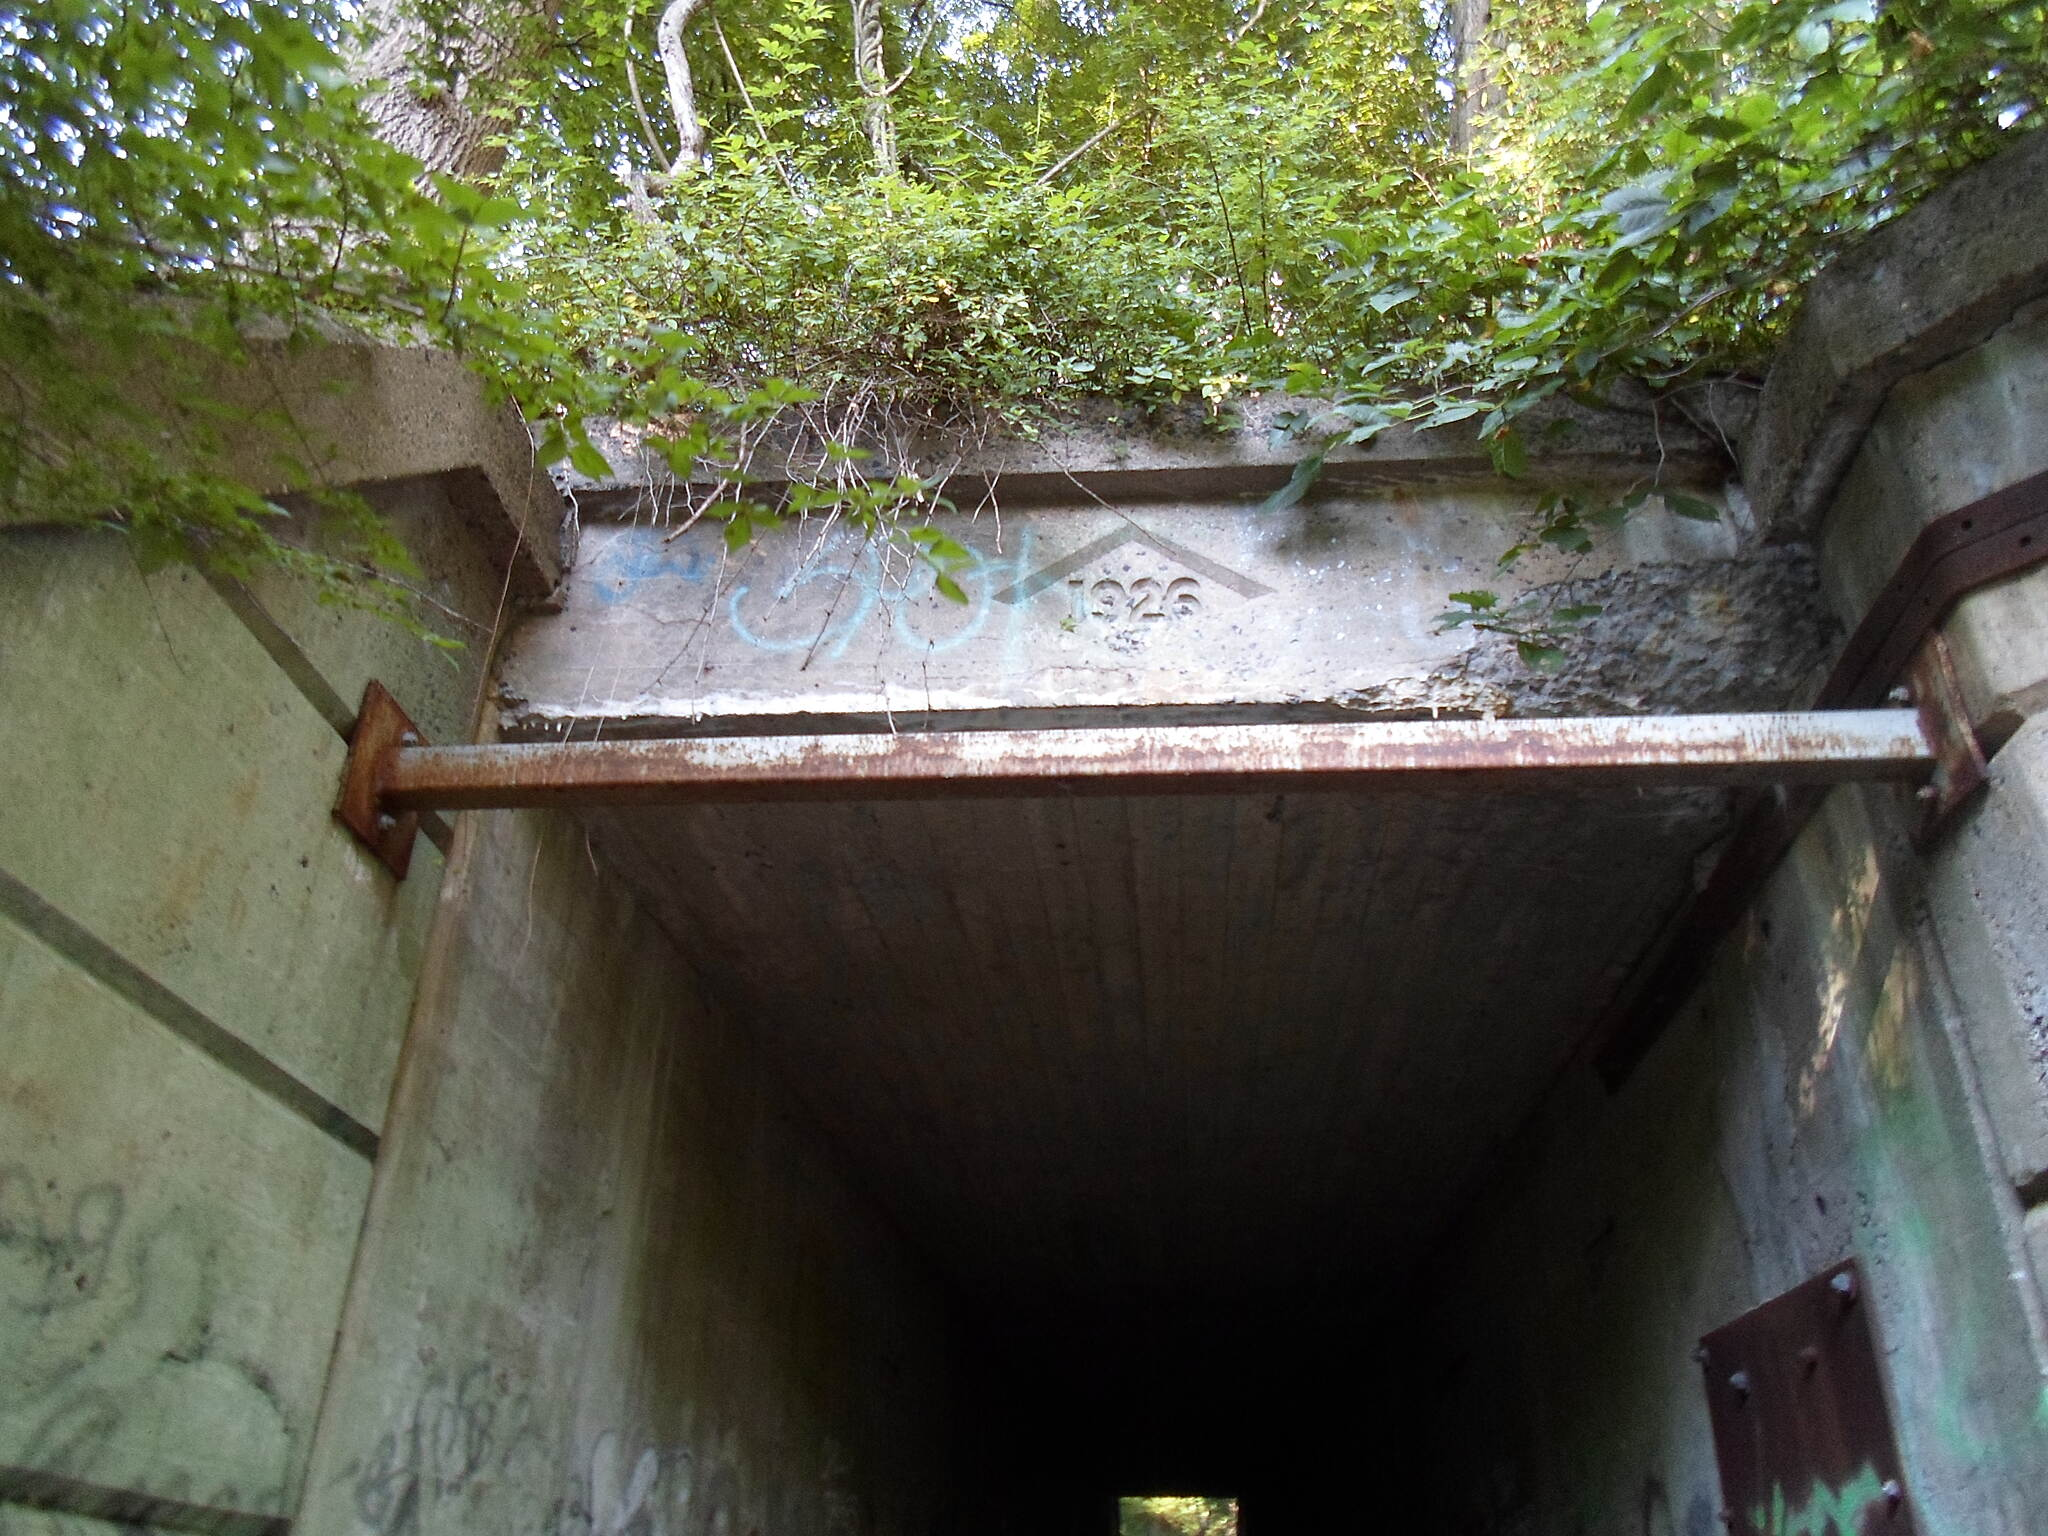 Exeter Scenic River Trail Exeter Scenic River Trail The tunnel beneath the rail line at the trail's western terminus was built in 1926; unfortunately, it's also marked up with graffiti.